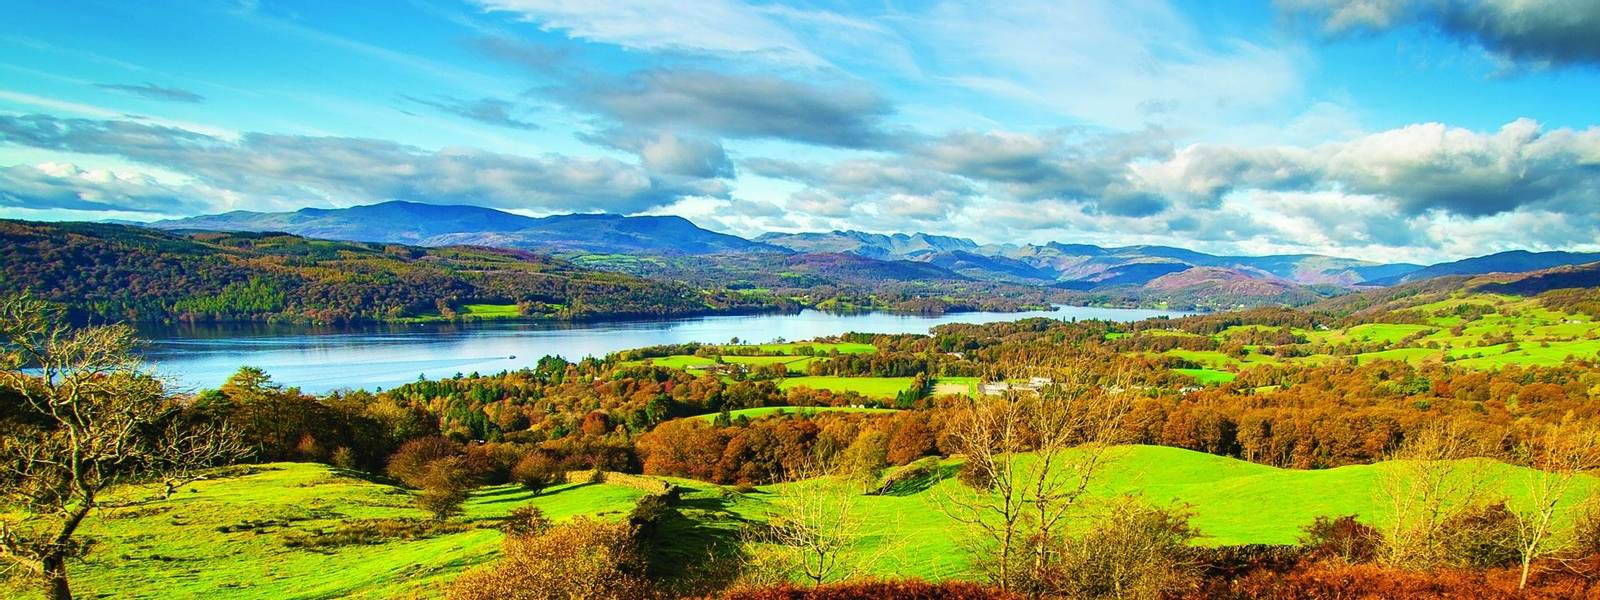 View on Windermere Lake from Orrest Head. English Lake District National Park, Cumbria, UK